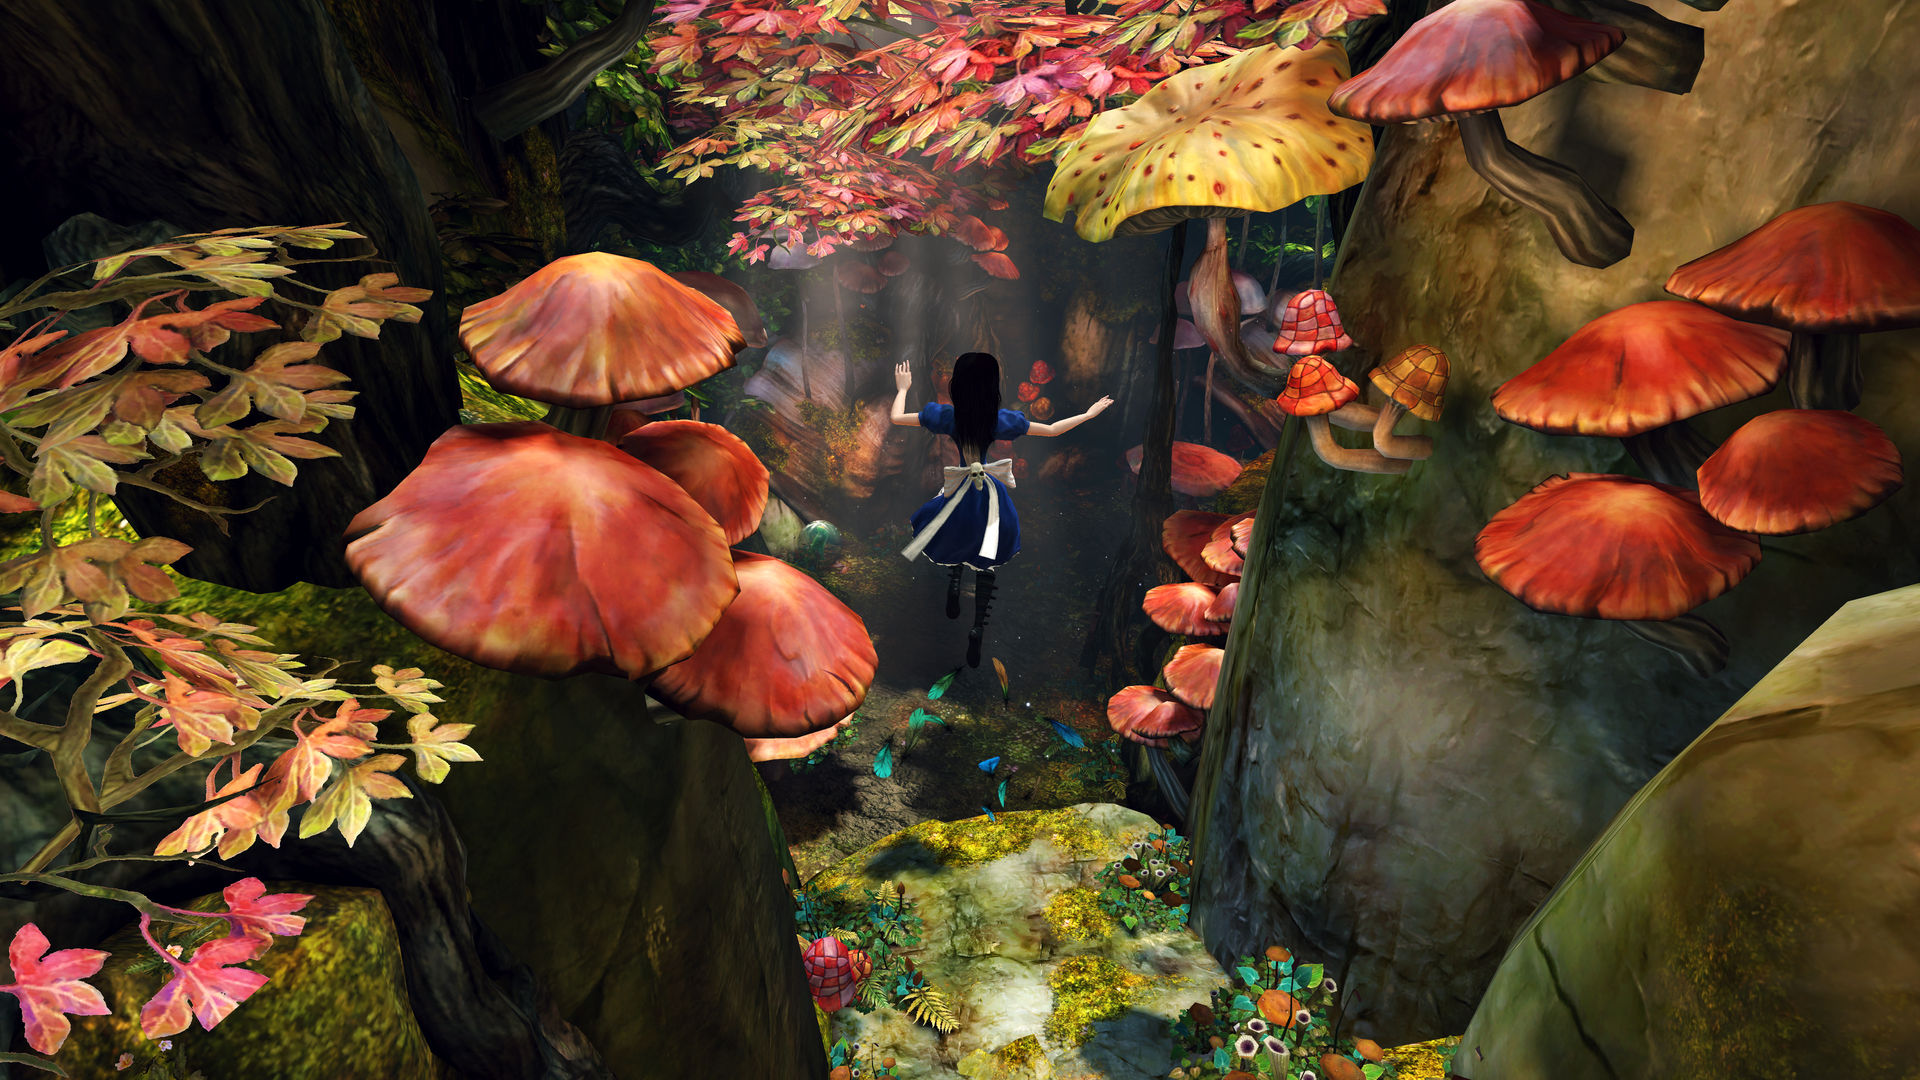 alice ivory vaults international confex expo platform alice  alice madness returns origin ea store alice1 alice2